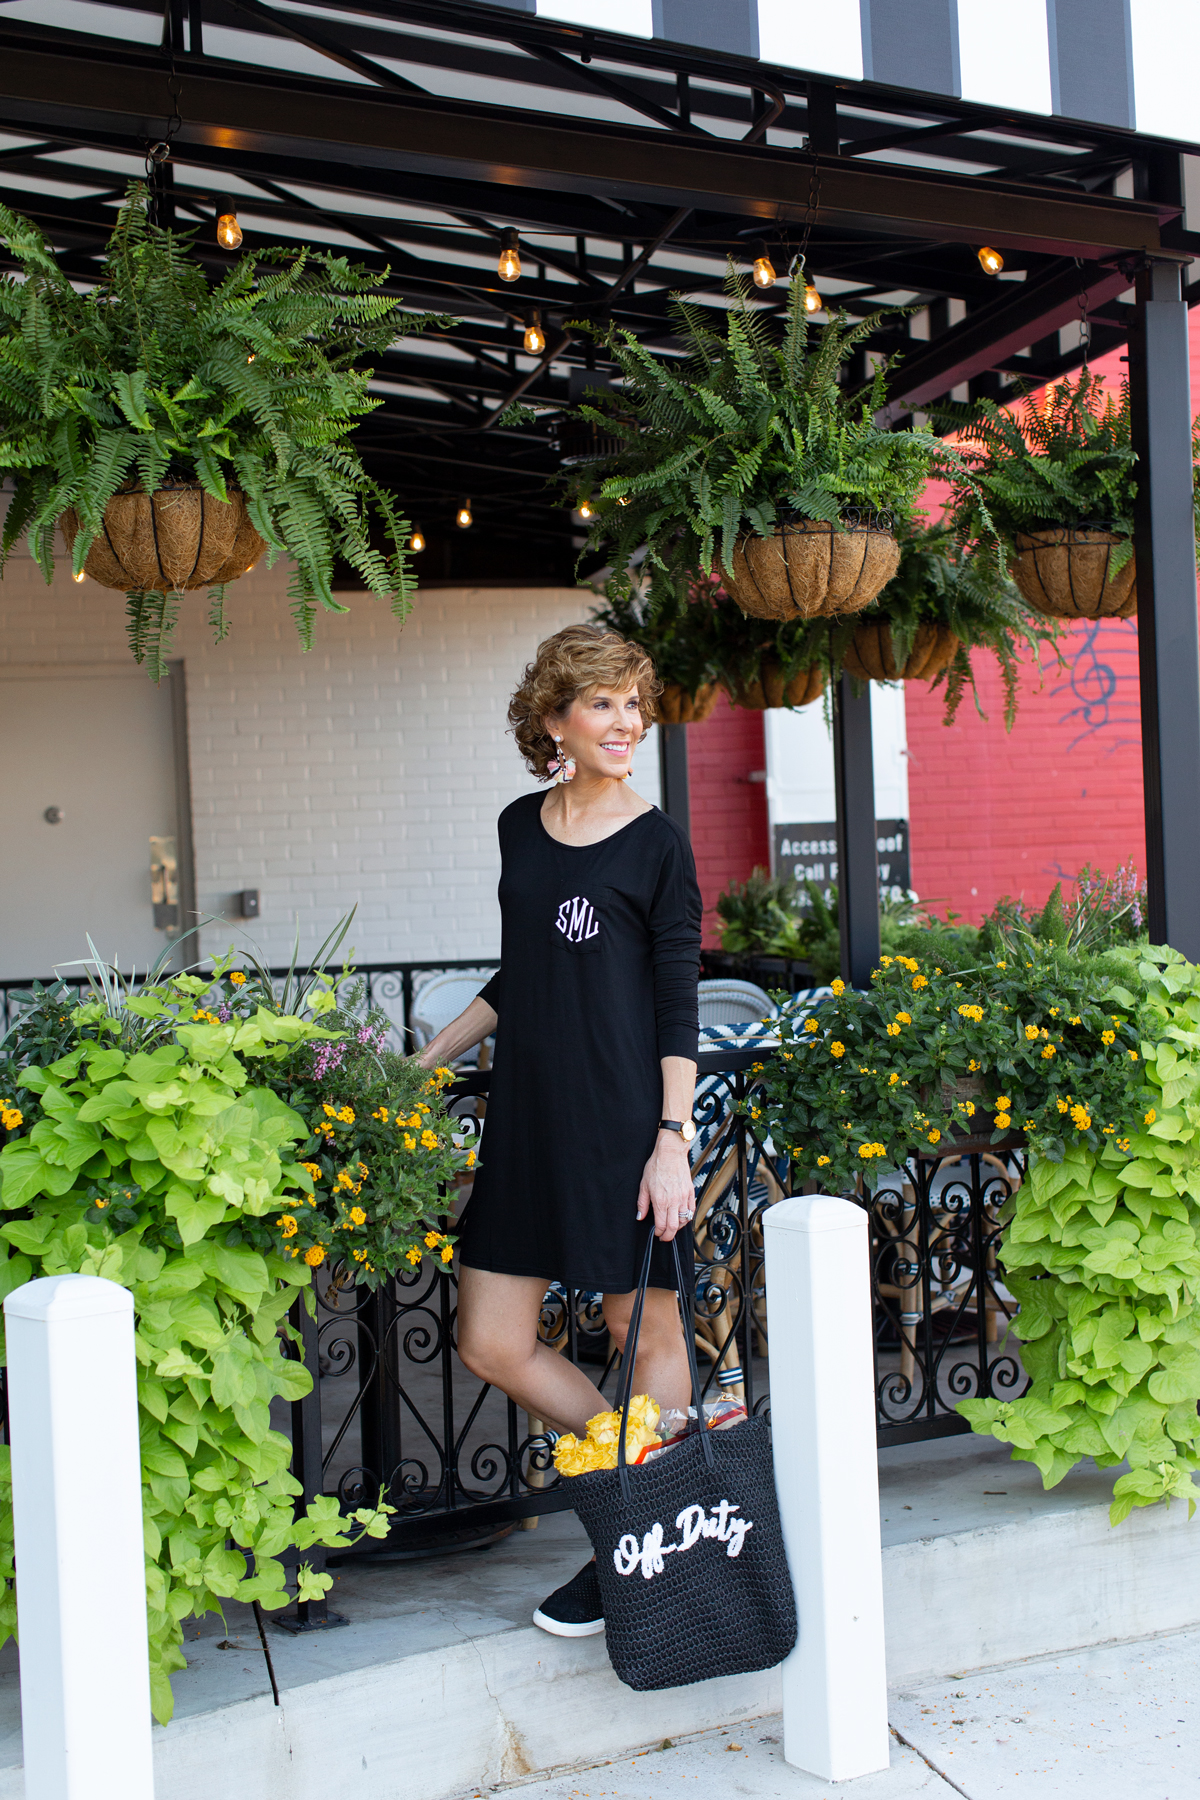 woman wearing black dress standing in front of an outdoor restaurant patio